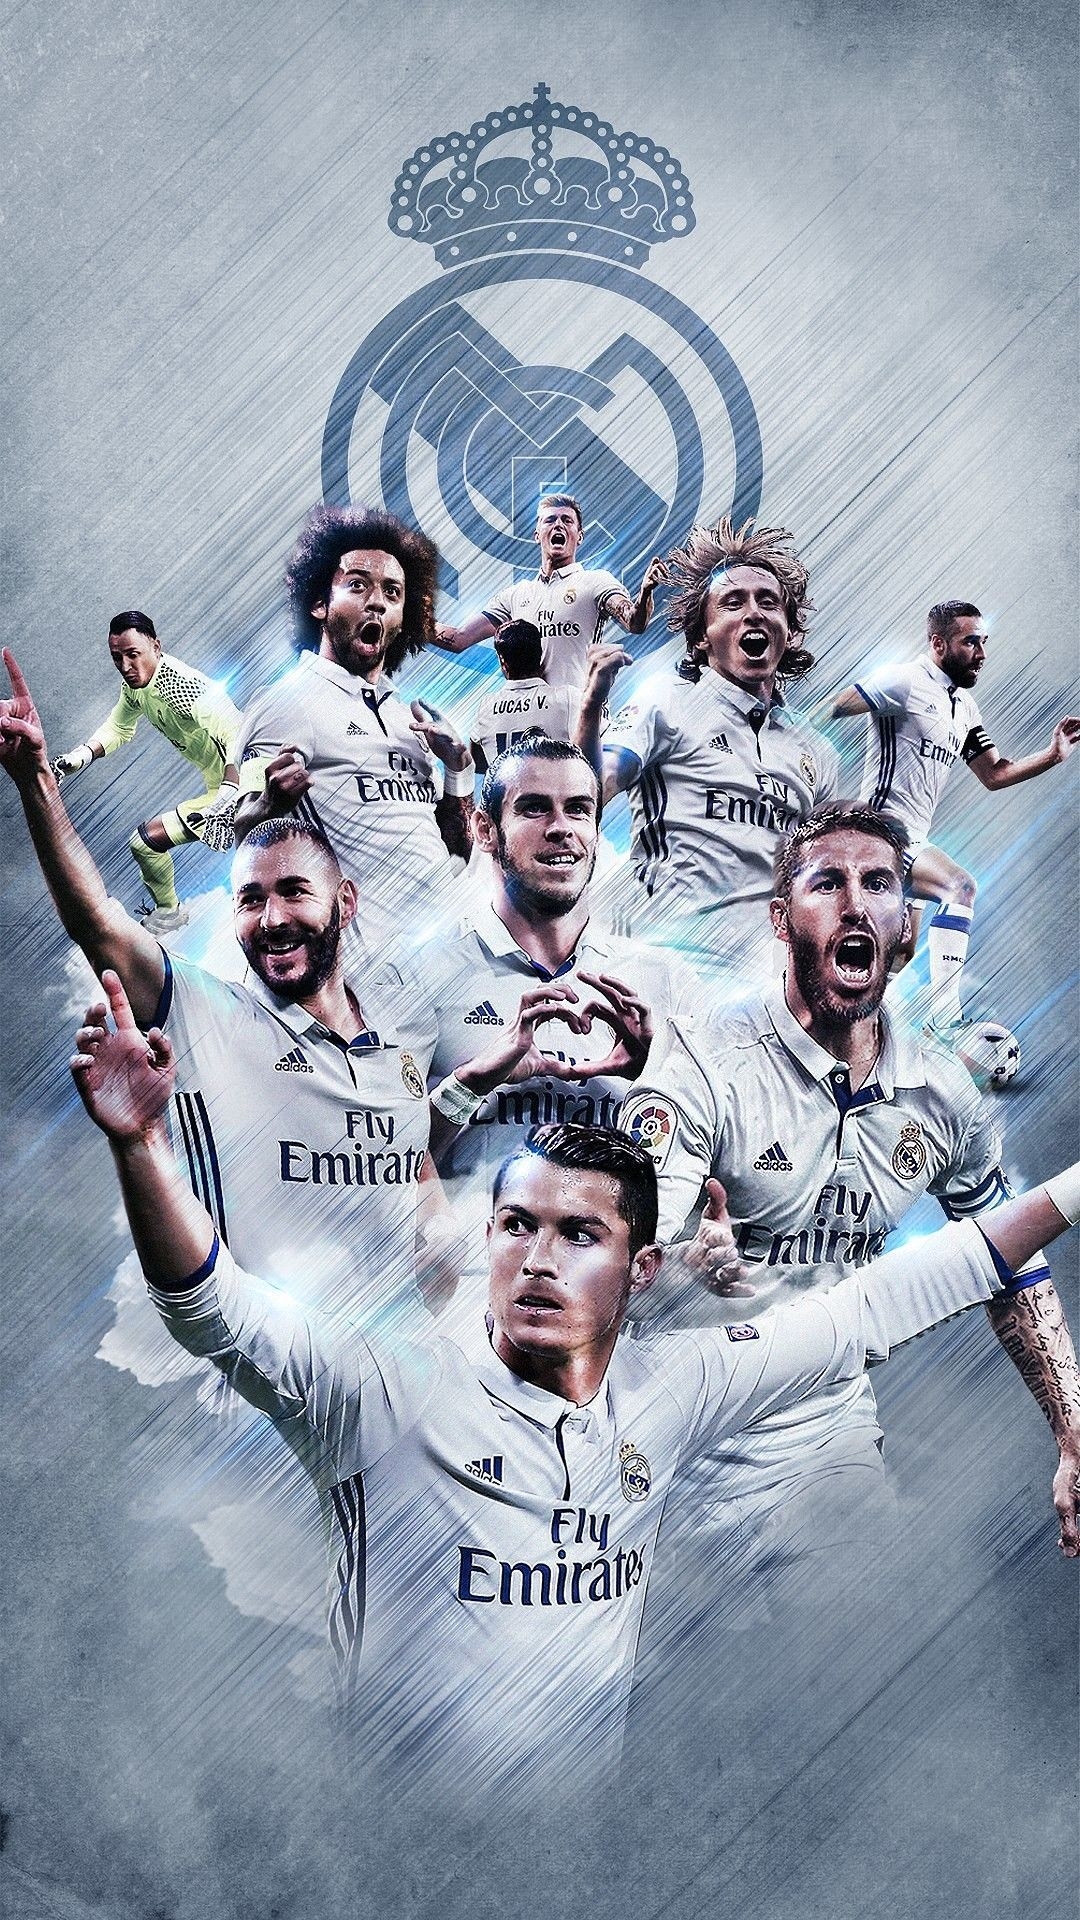 Pin By Khuzaima On Main In 2020 Ronaldo Real Madrid Real Madrid Wallpapers Real Madrid Cristiano Ronaldo